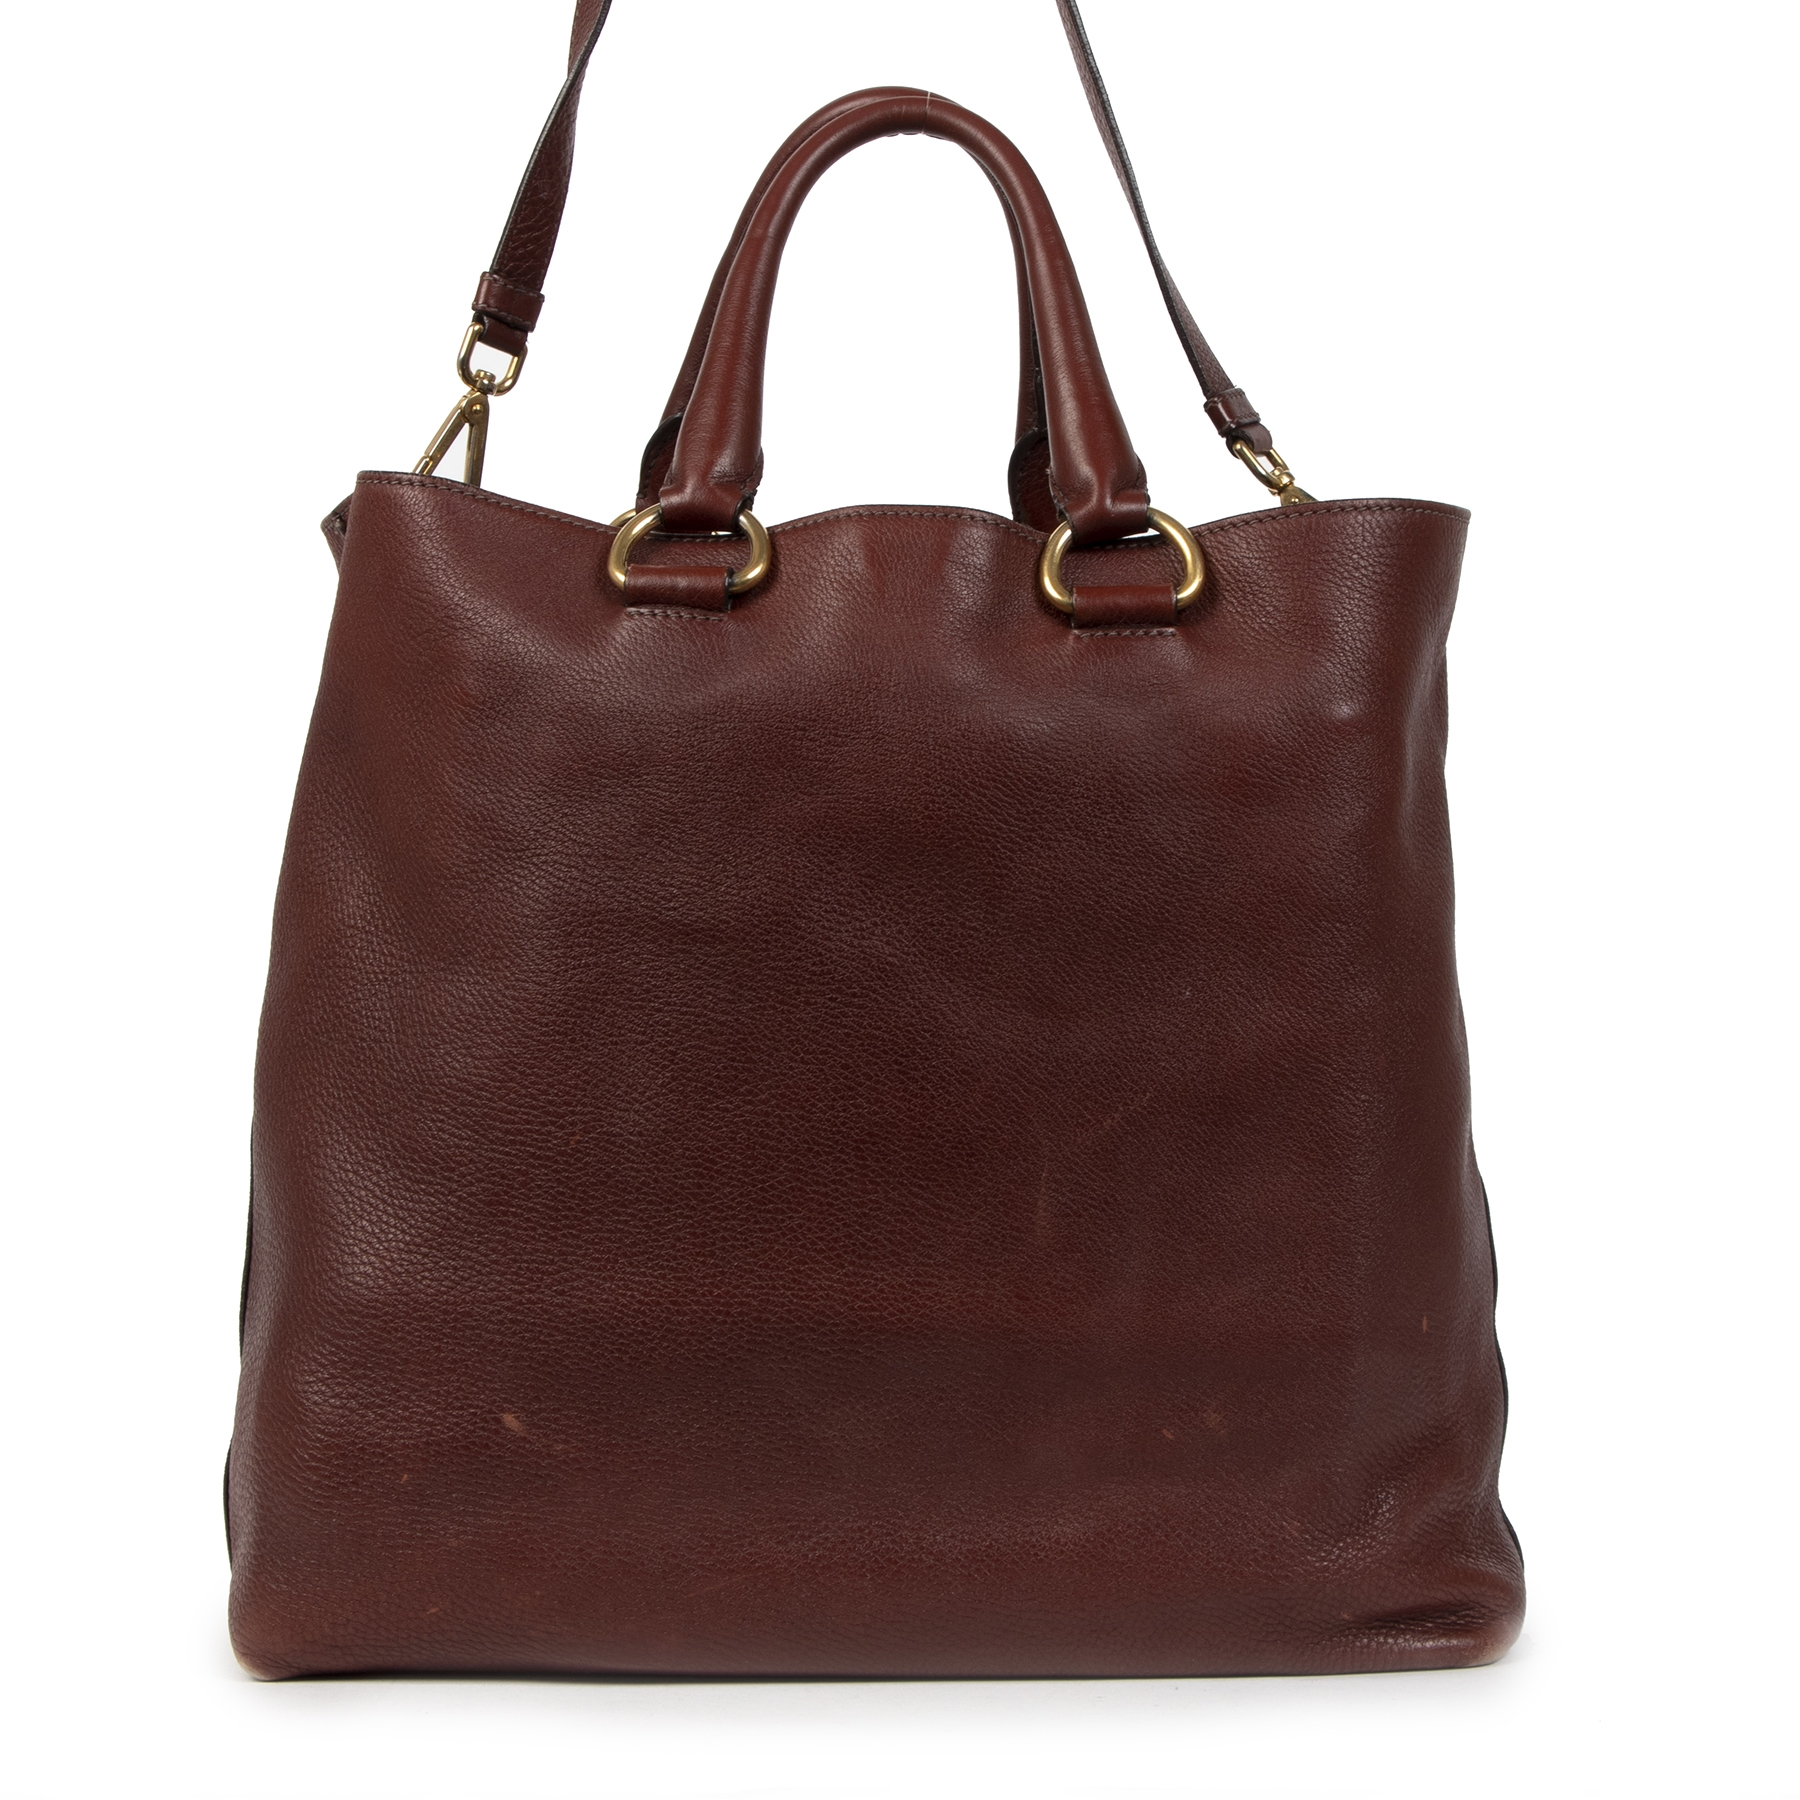 We buy and sell your authentic Prada Daino Burgundy Tote Bag  for the best price